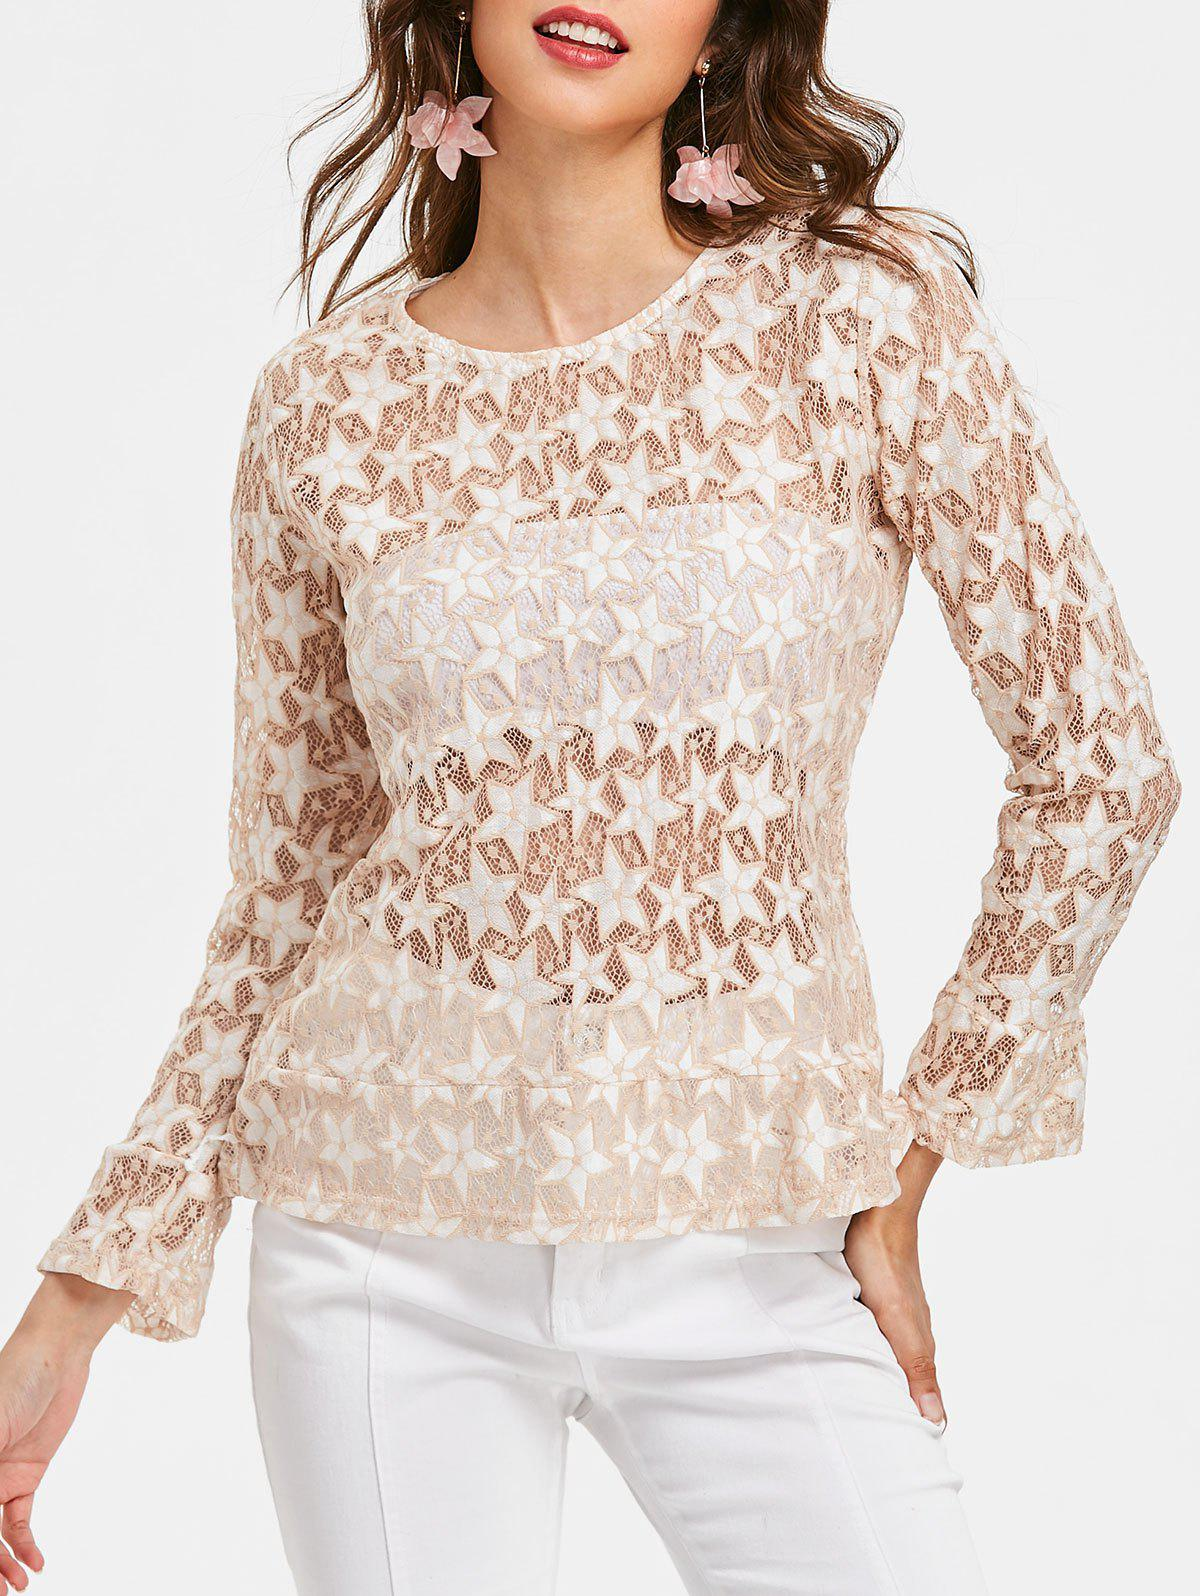 Discount Star See Thru Blouse